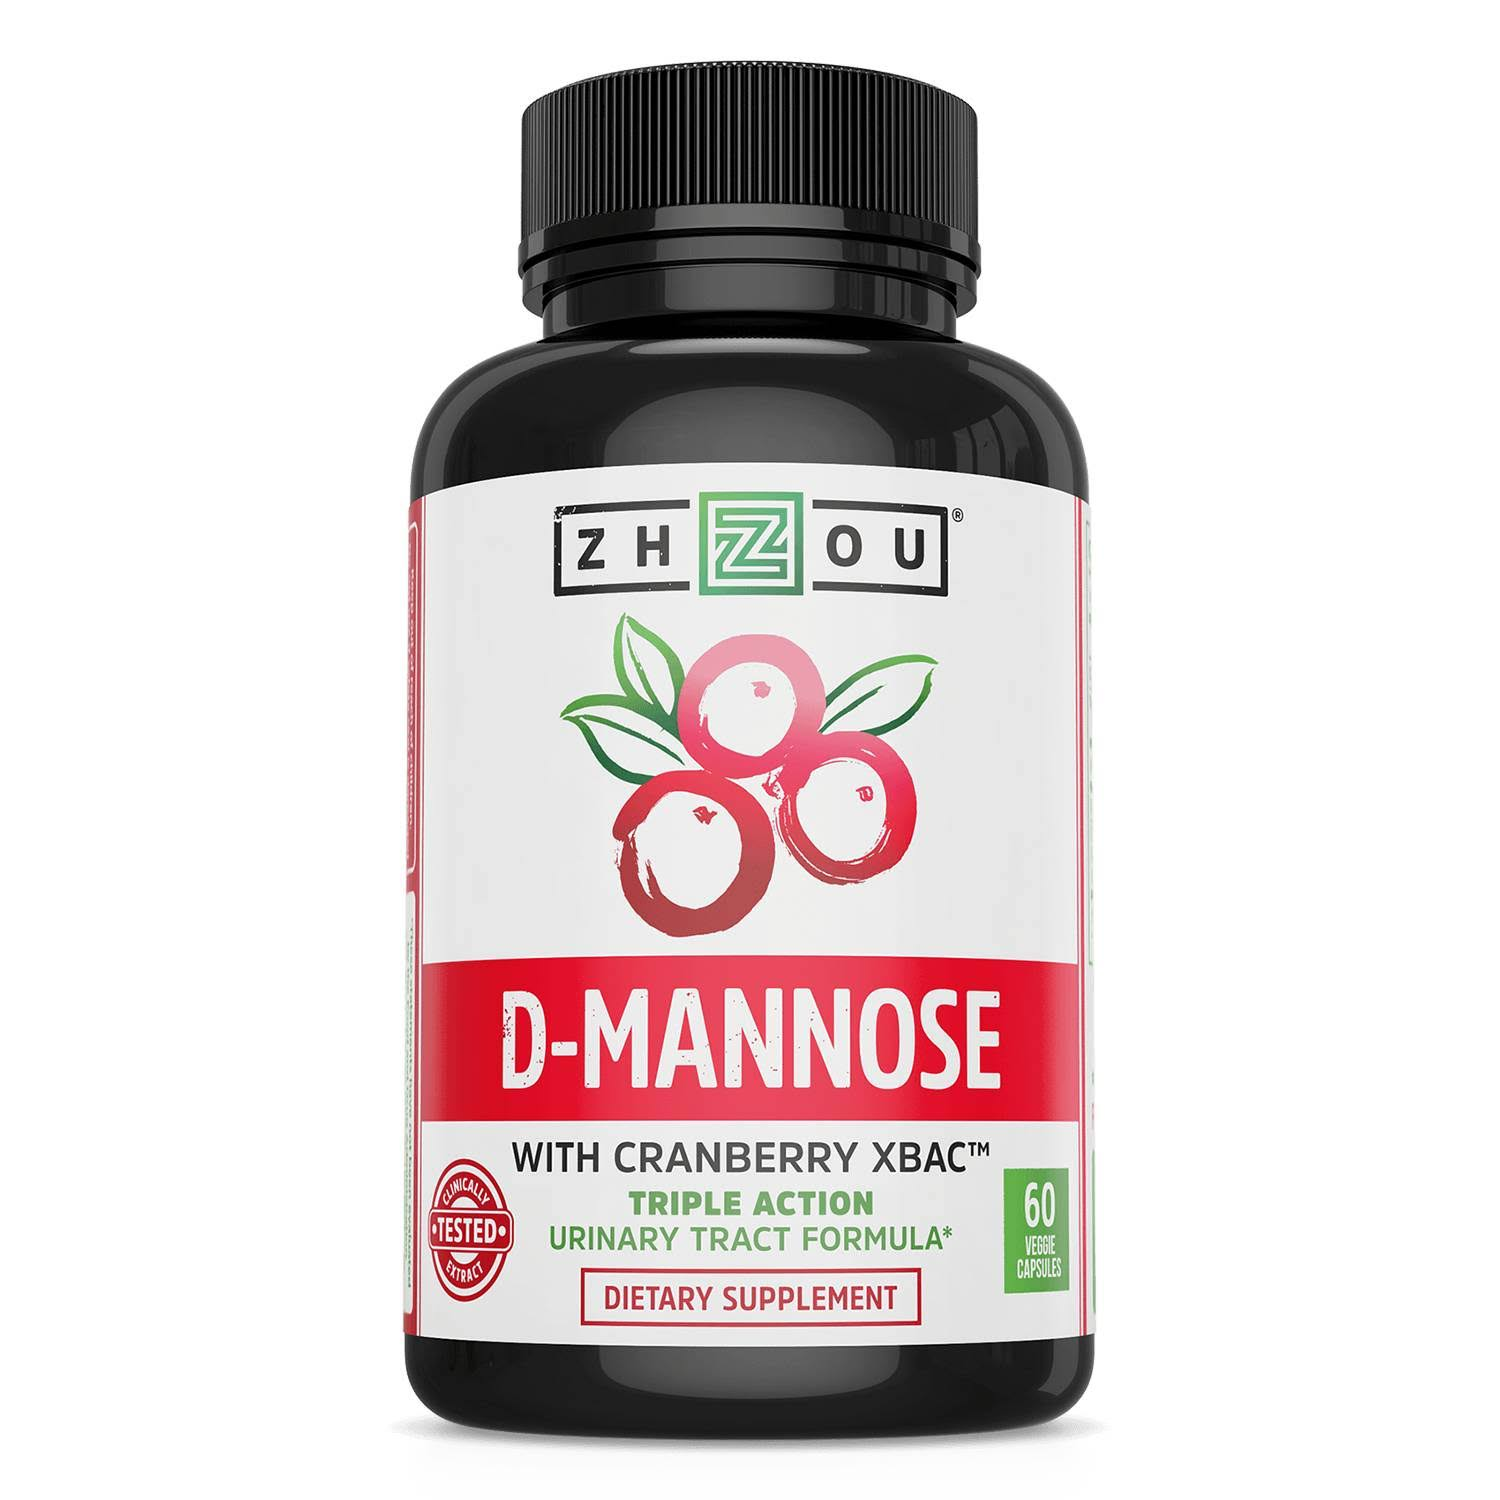 Zhou D-Mannose with Cranberry XBAC Dietary Supplement - 60 Veggie Capsules